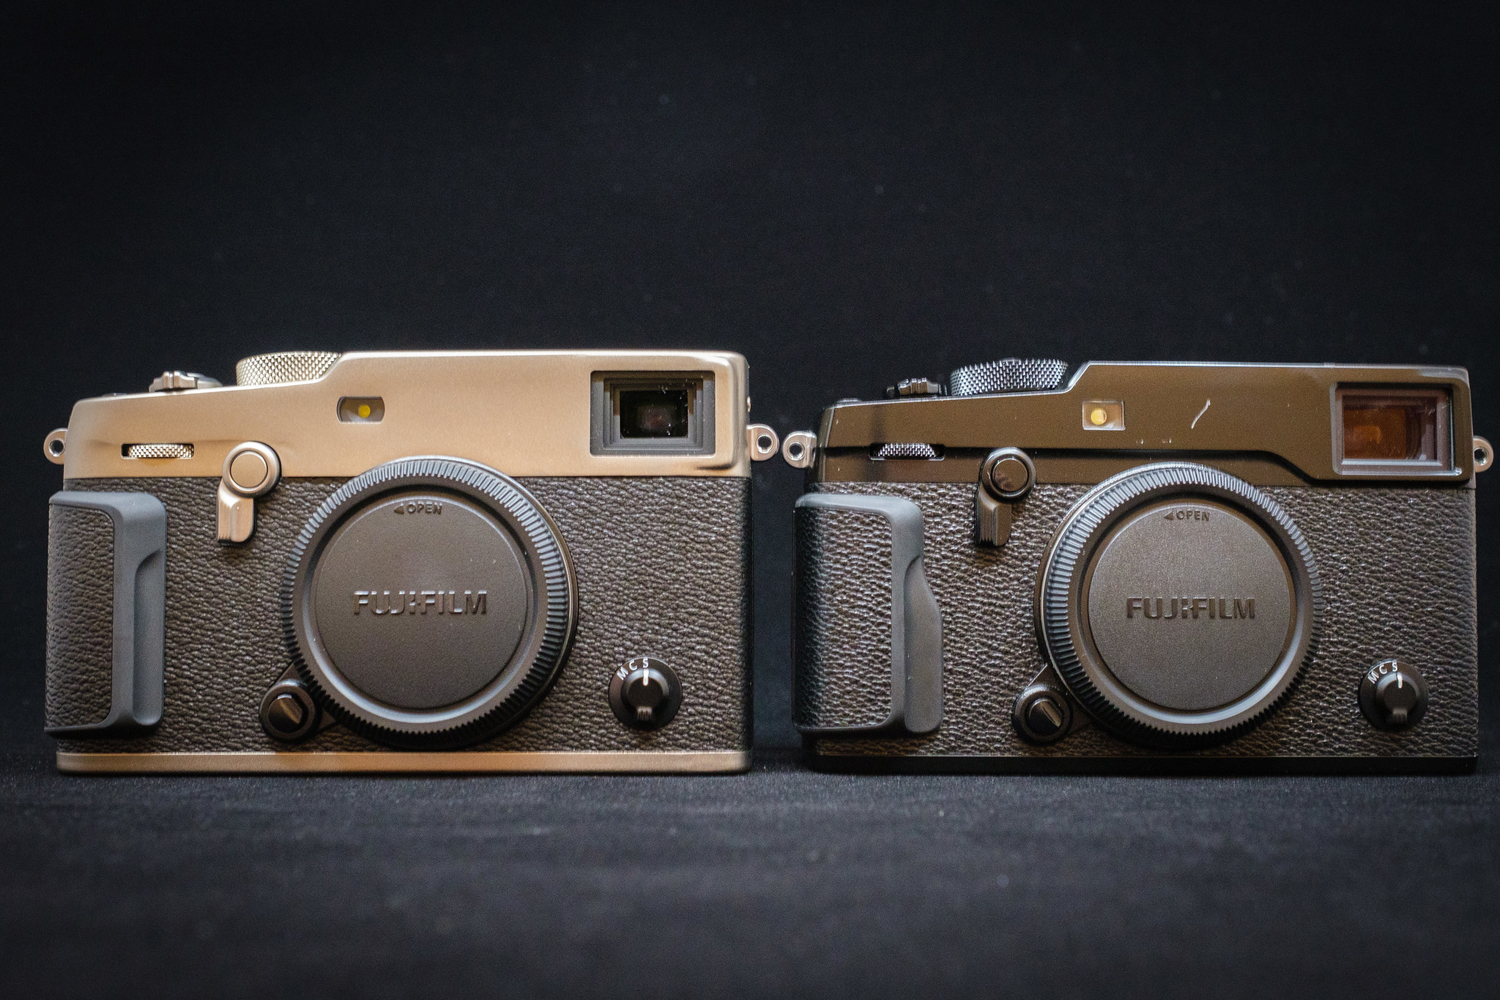 The Fujifilm X-Pro3 Review | Photography Pure - FUJI X PASSION